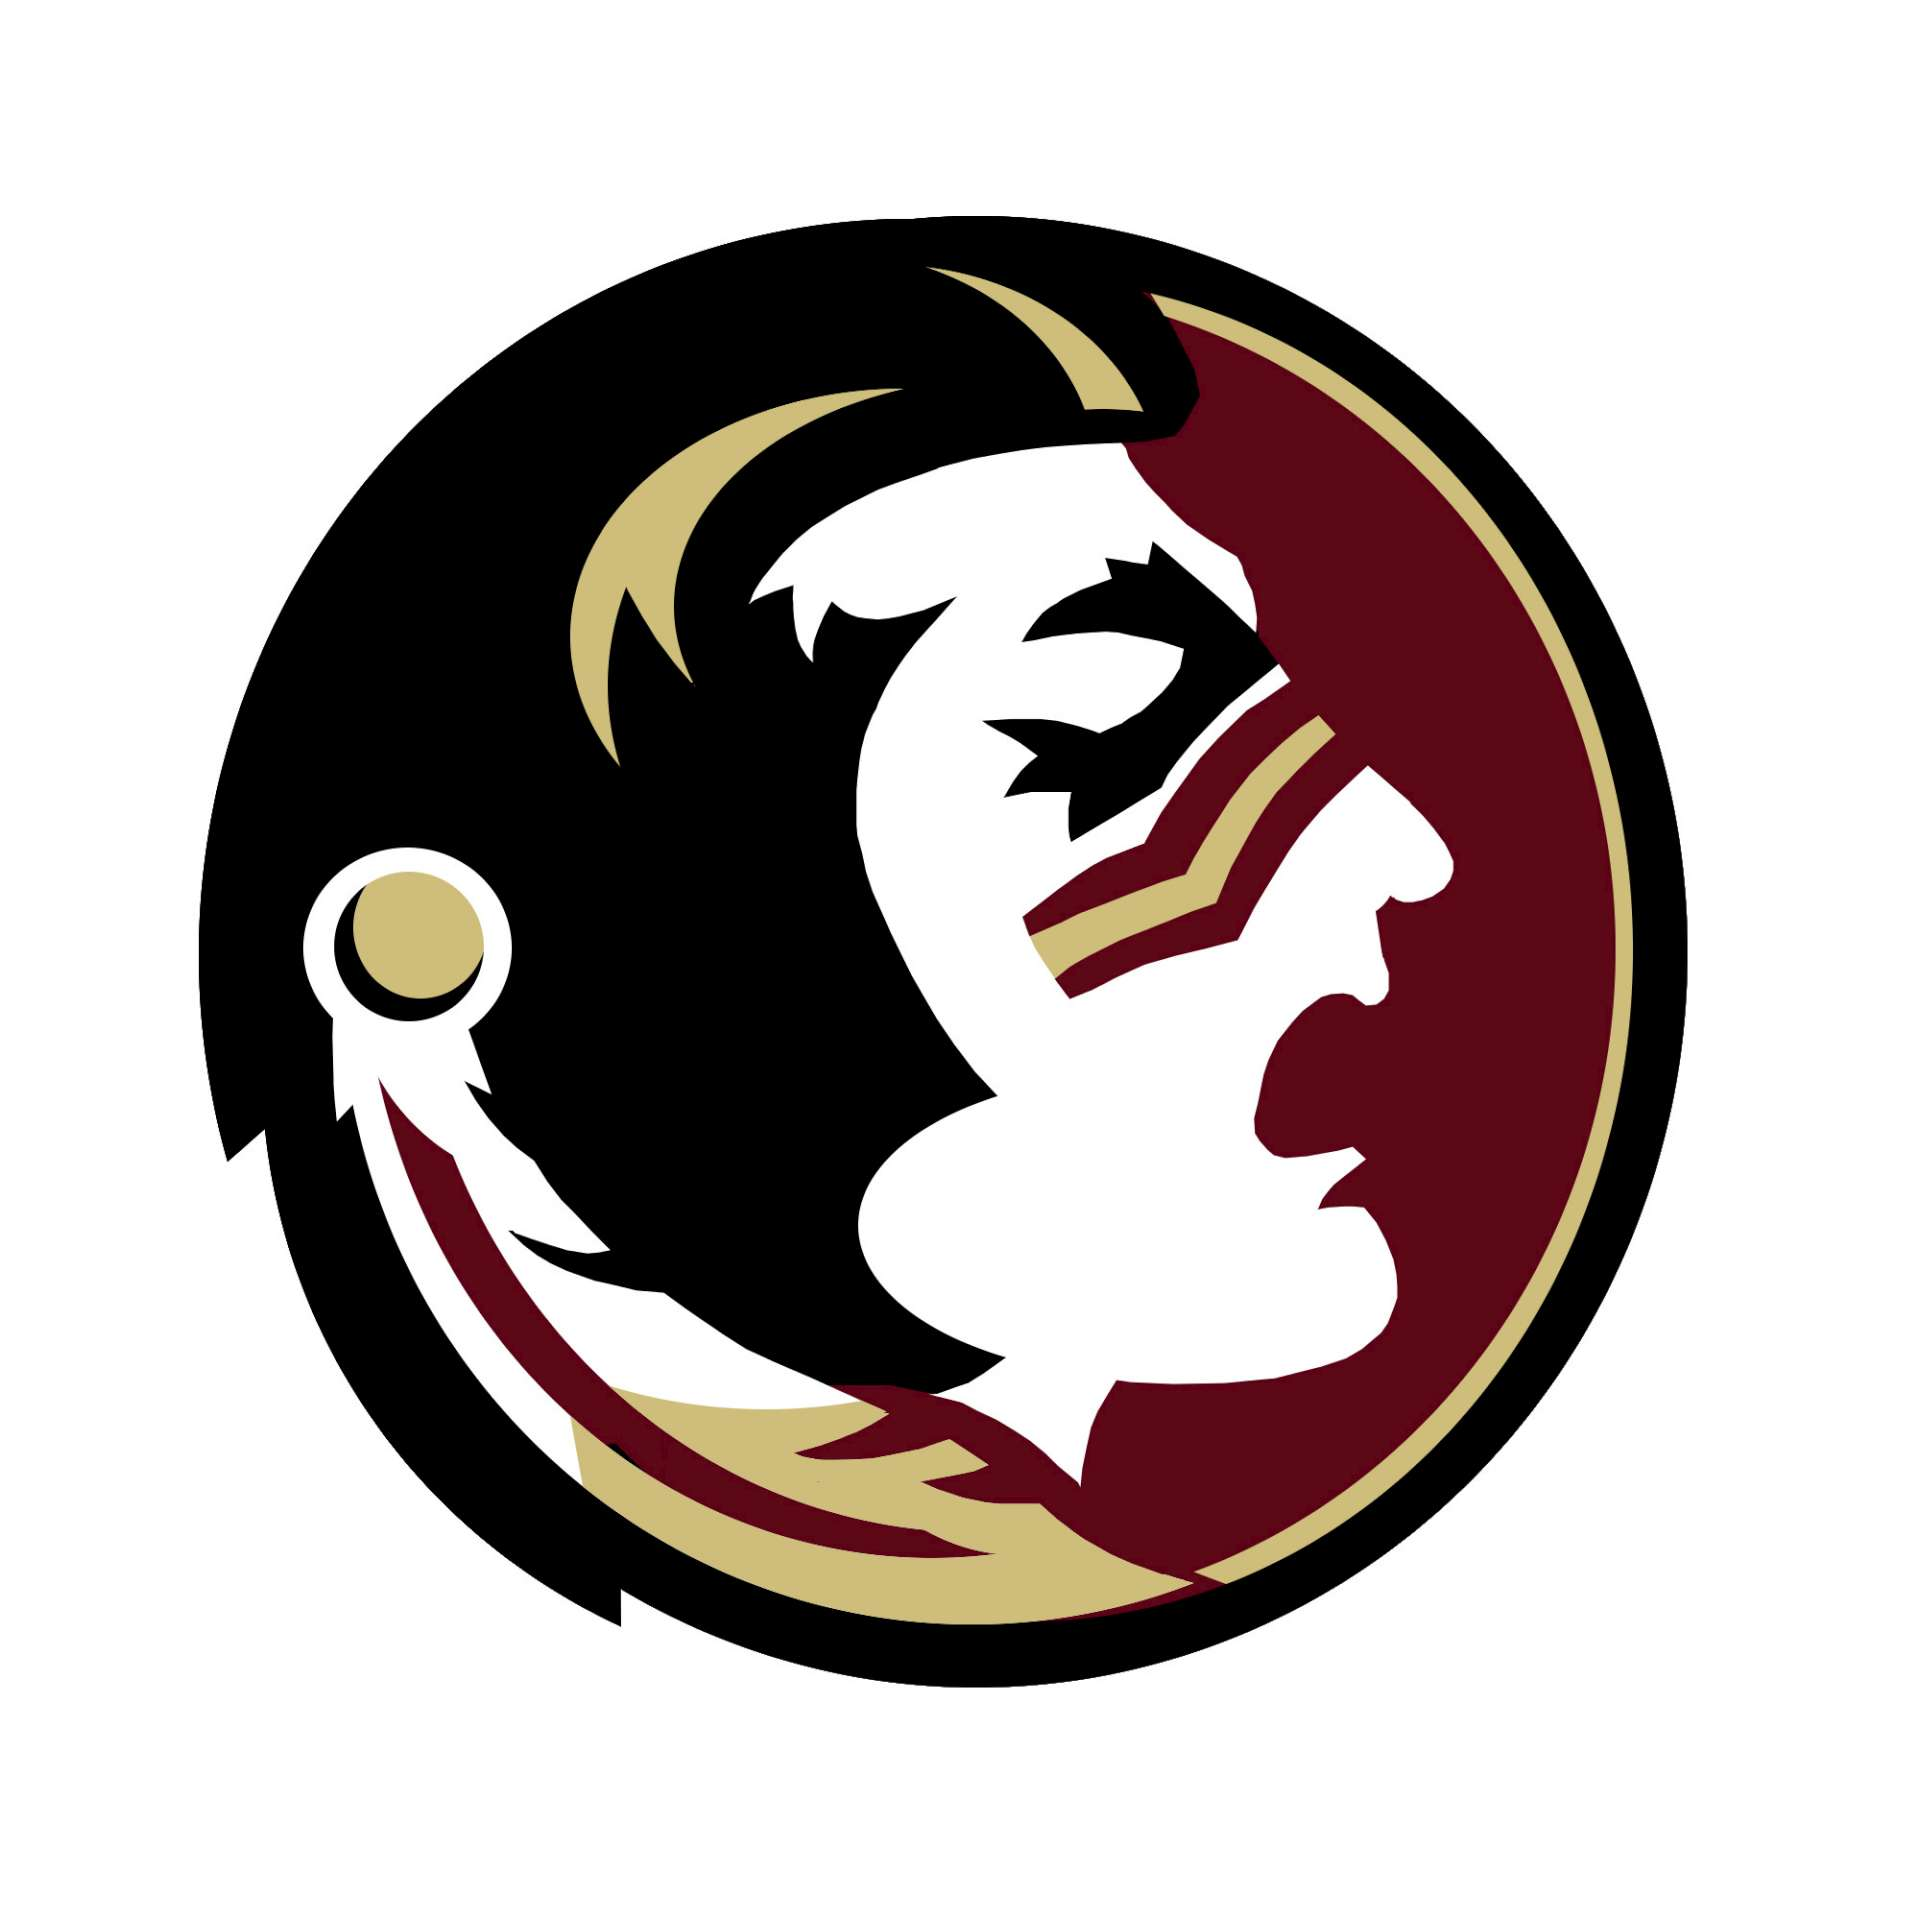 Fsu Football Wallpaper: Free FSU Wallpaper Seminoles